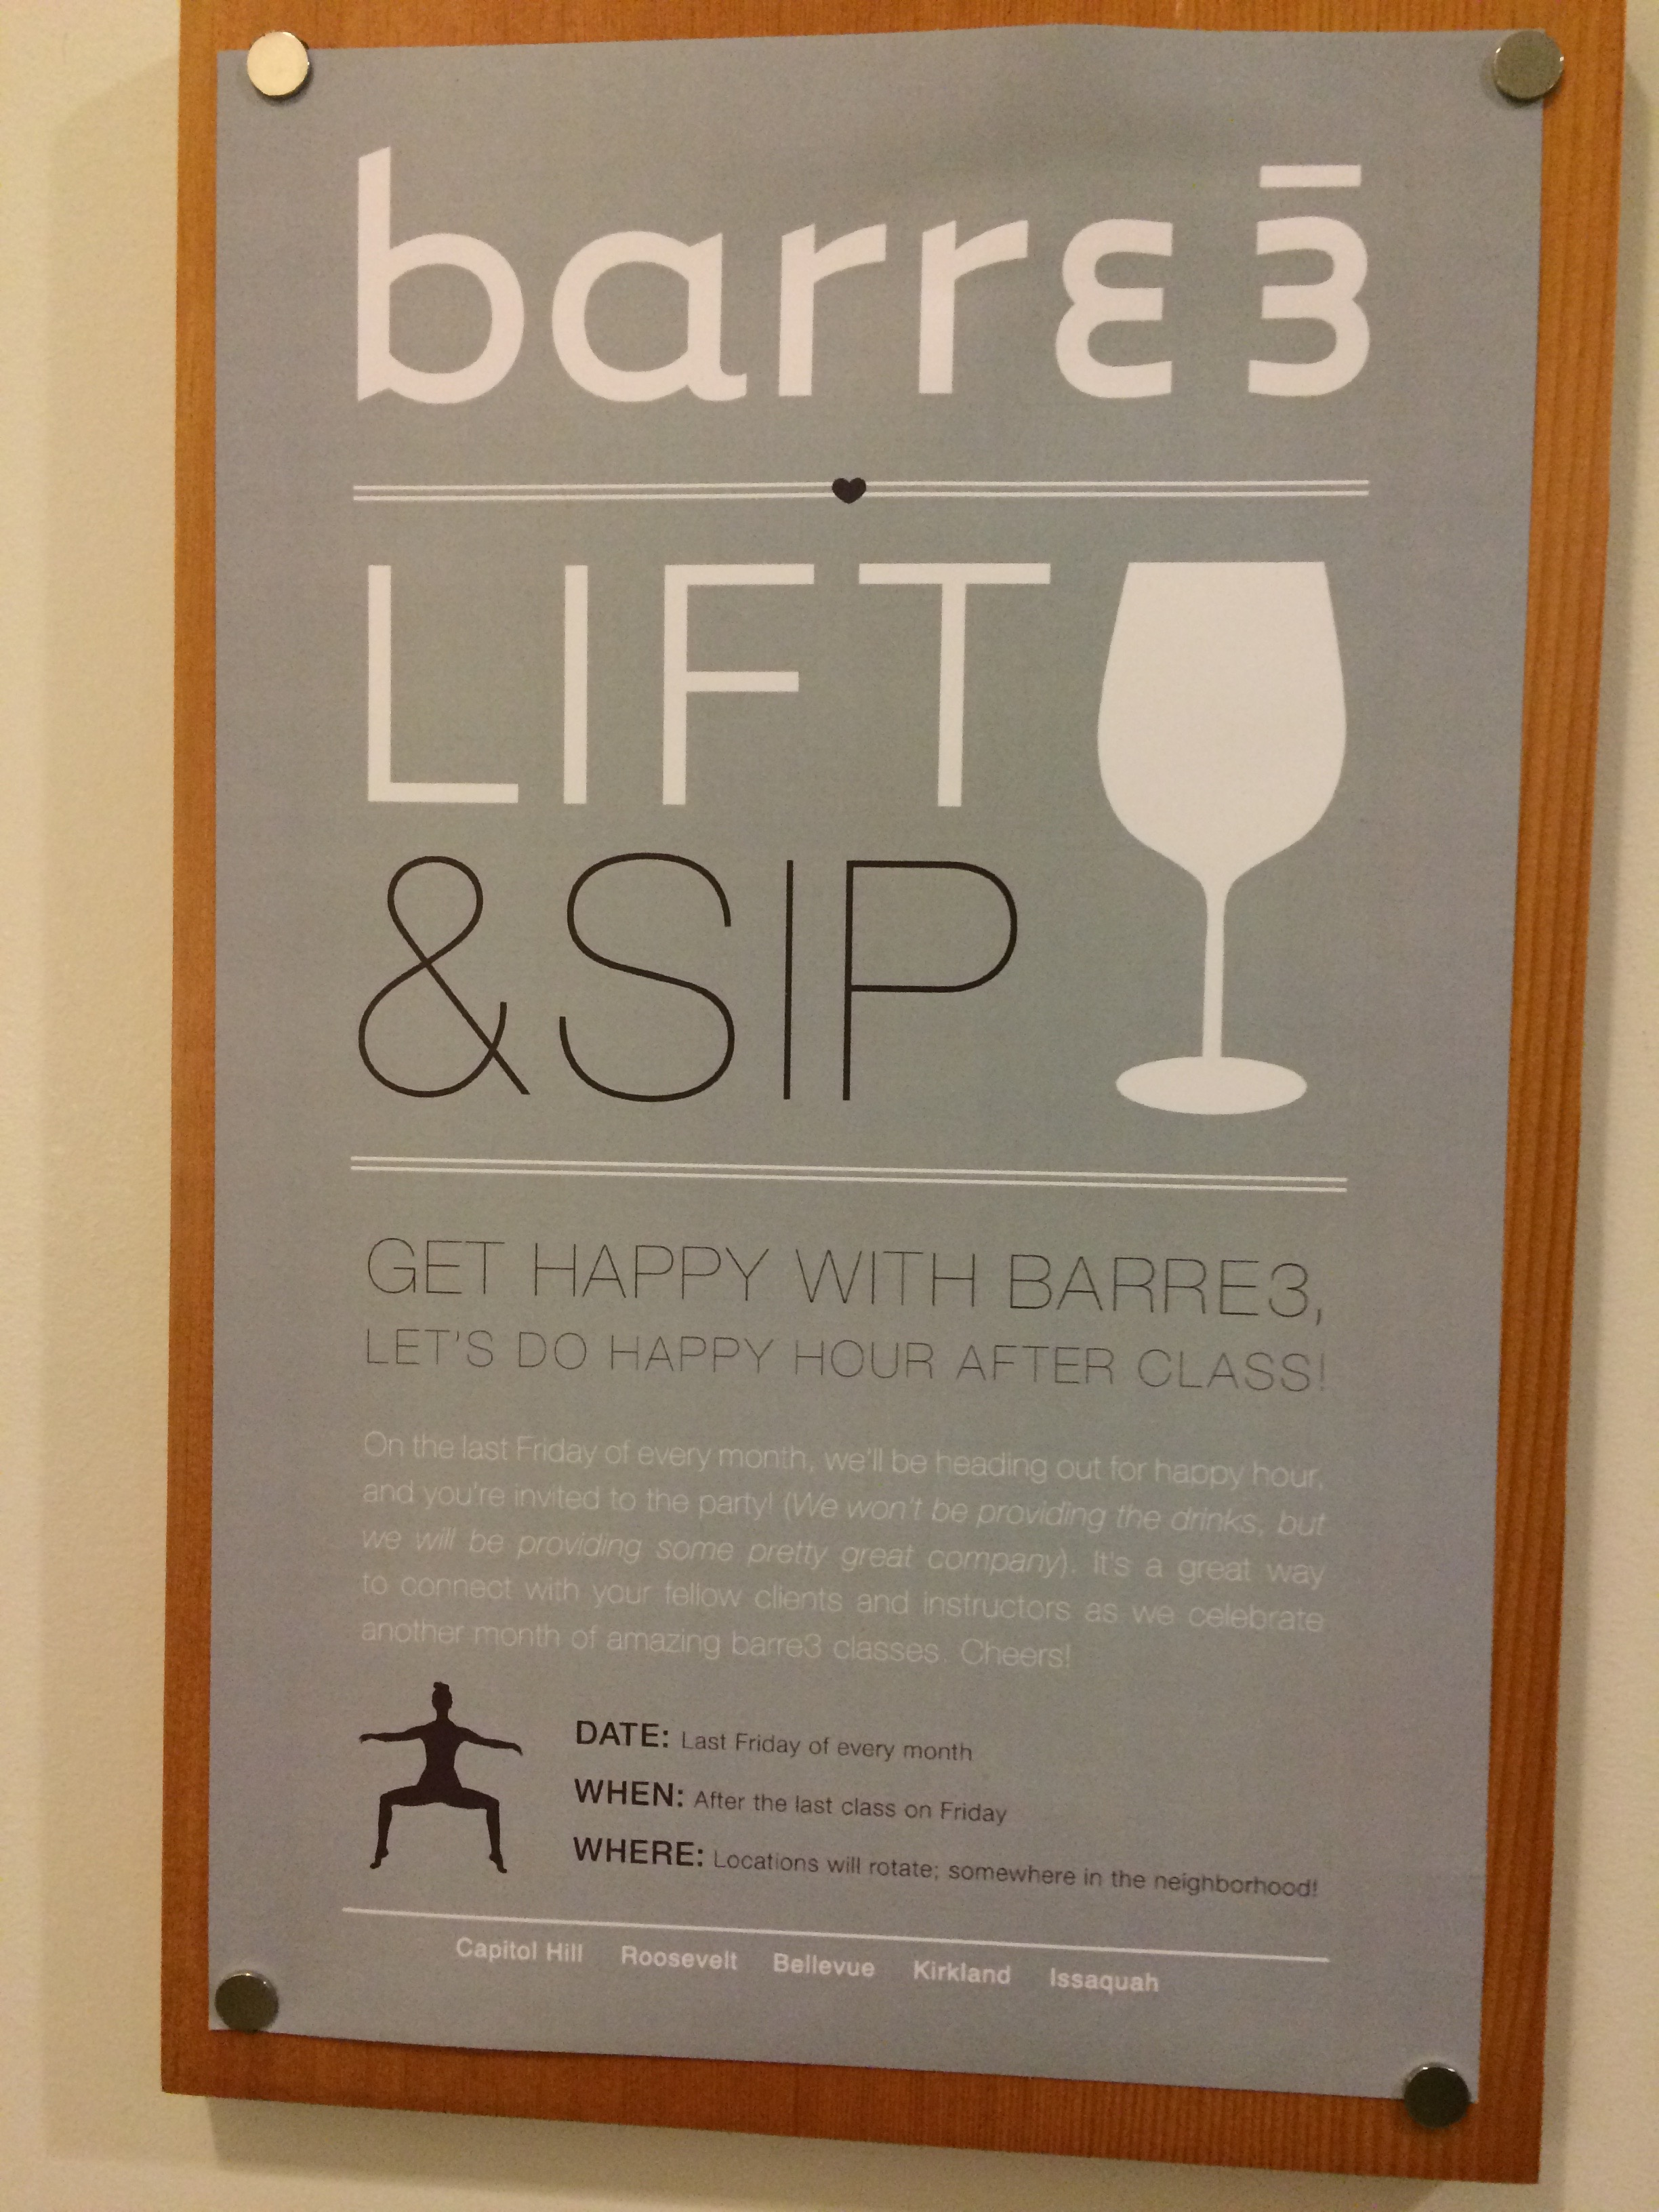 Special event at Barre3 and a great idea!